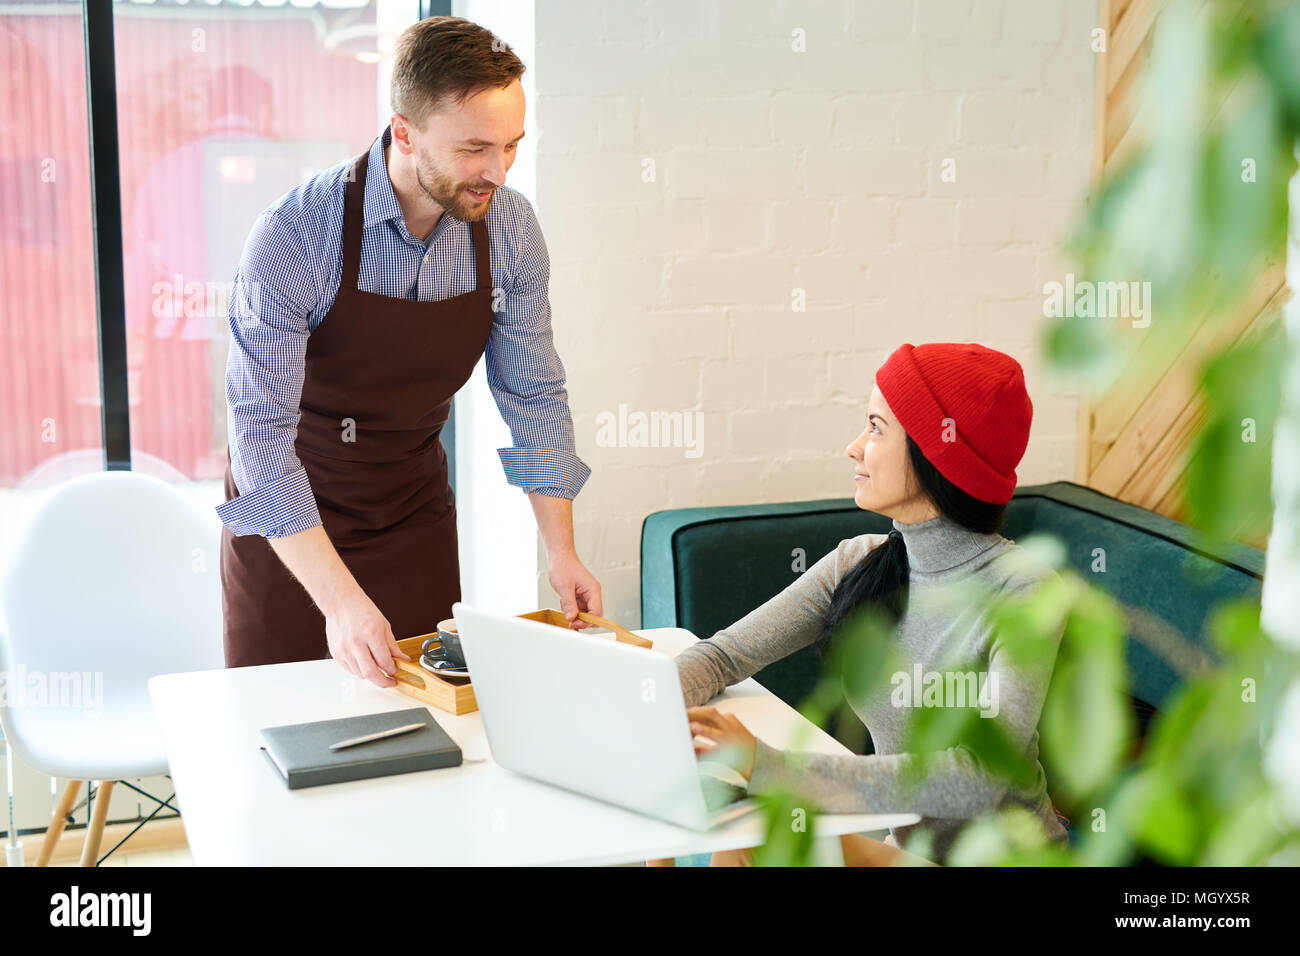 Waiter Serving Young Woman in Cafe - Stock Image